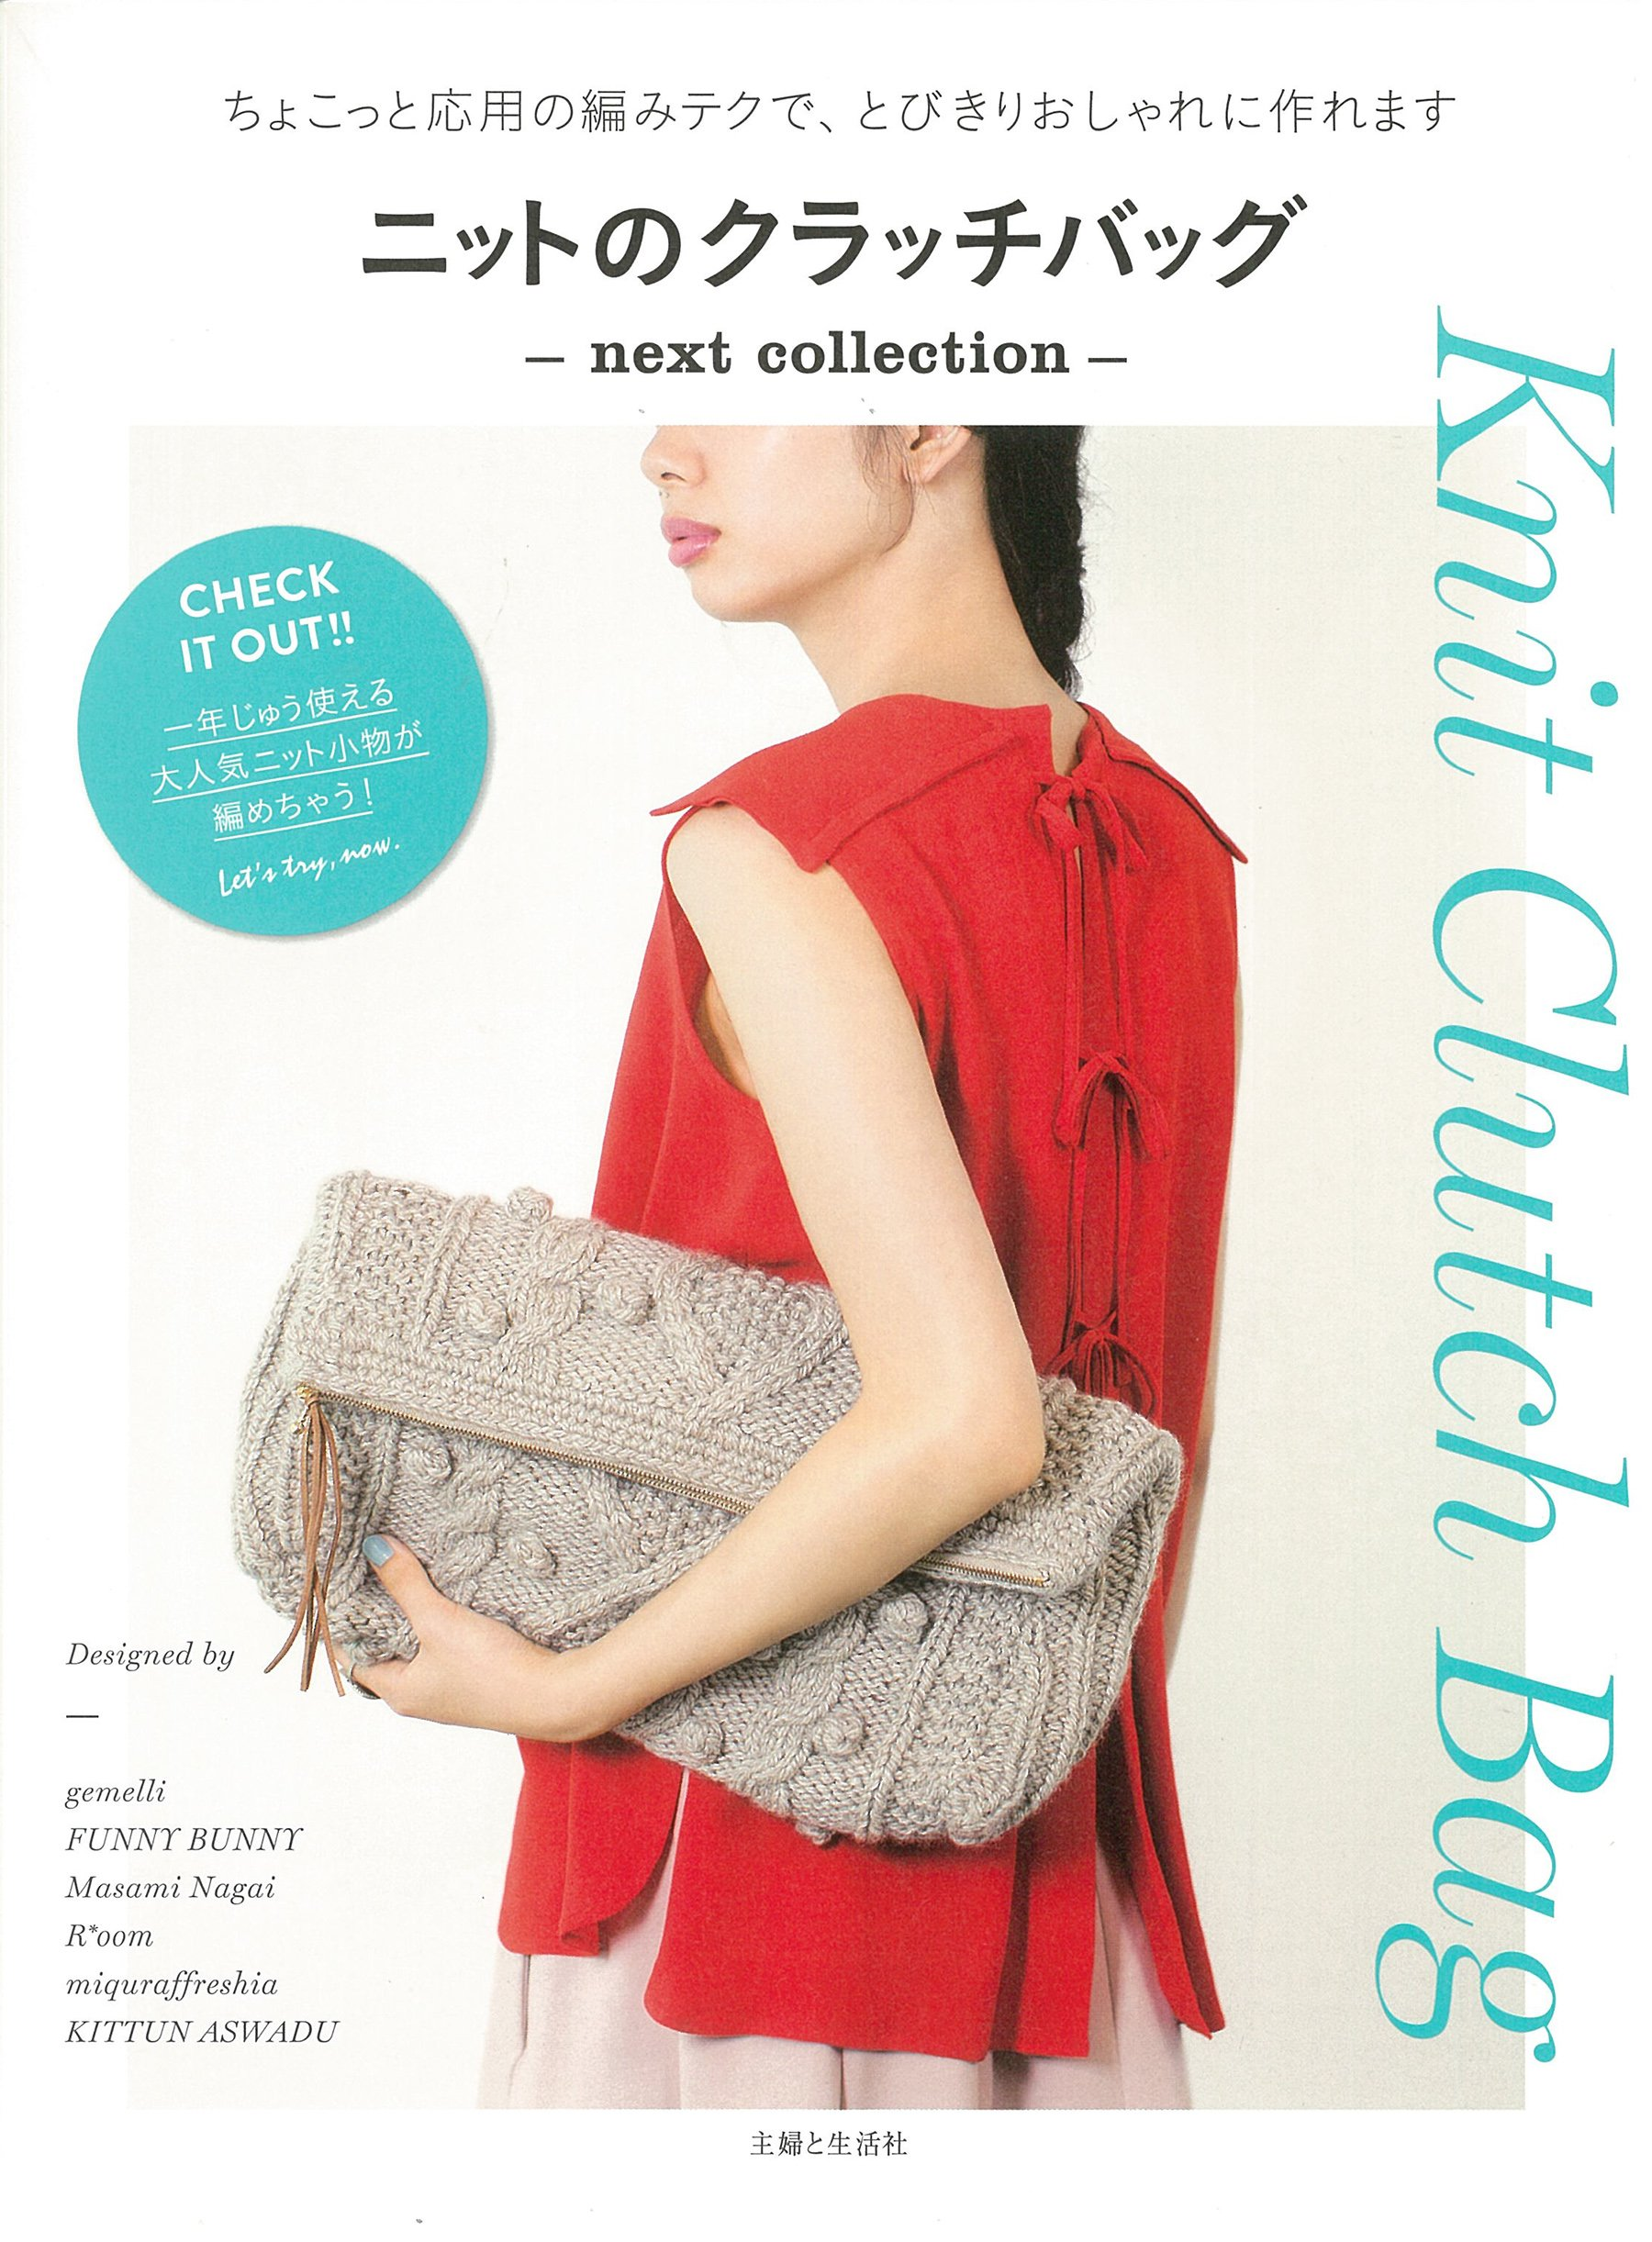 Knit clutch bag next collection large book